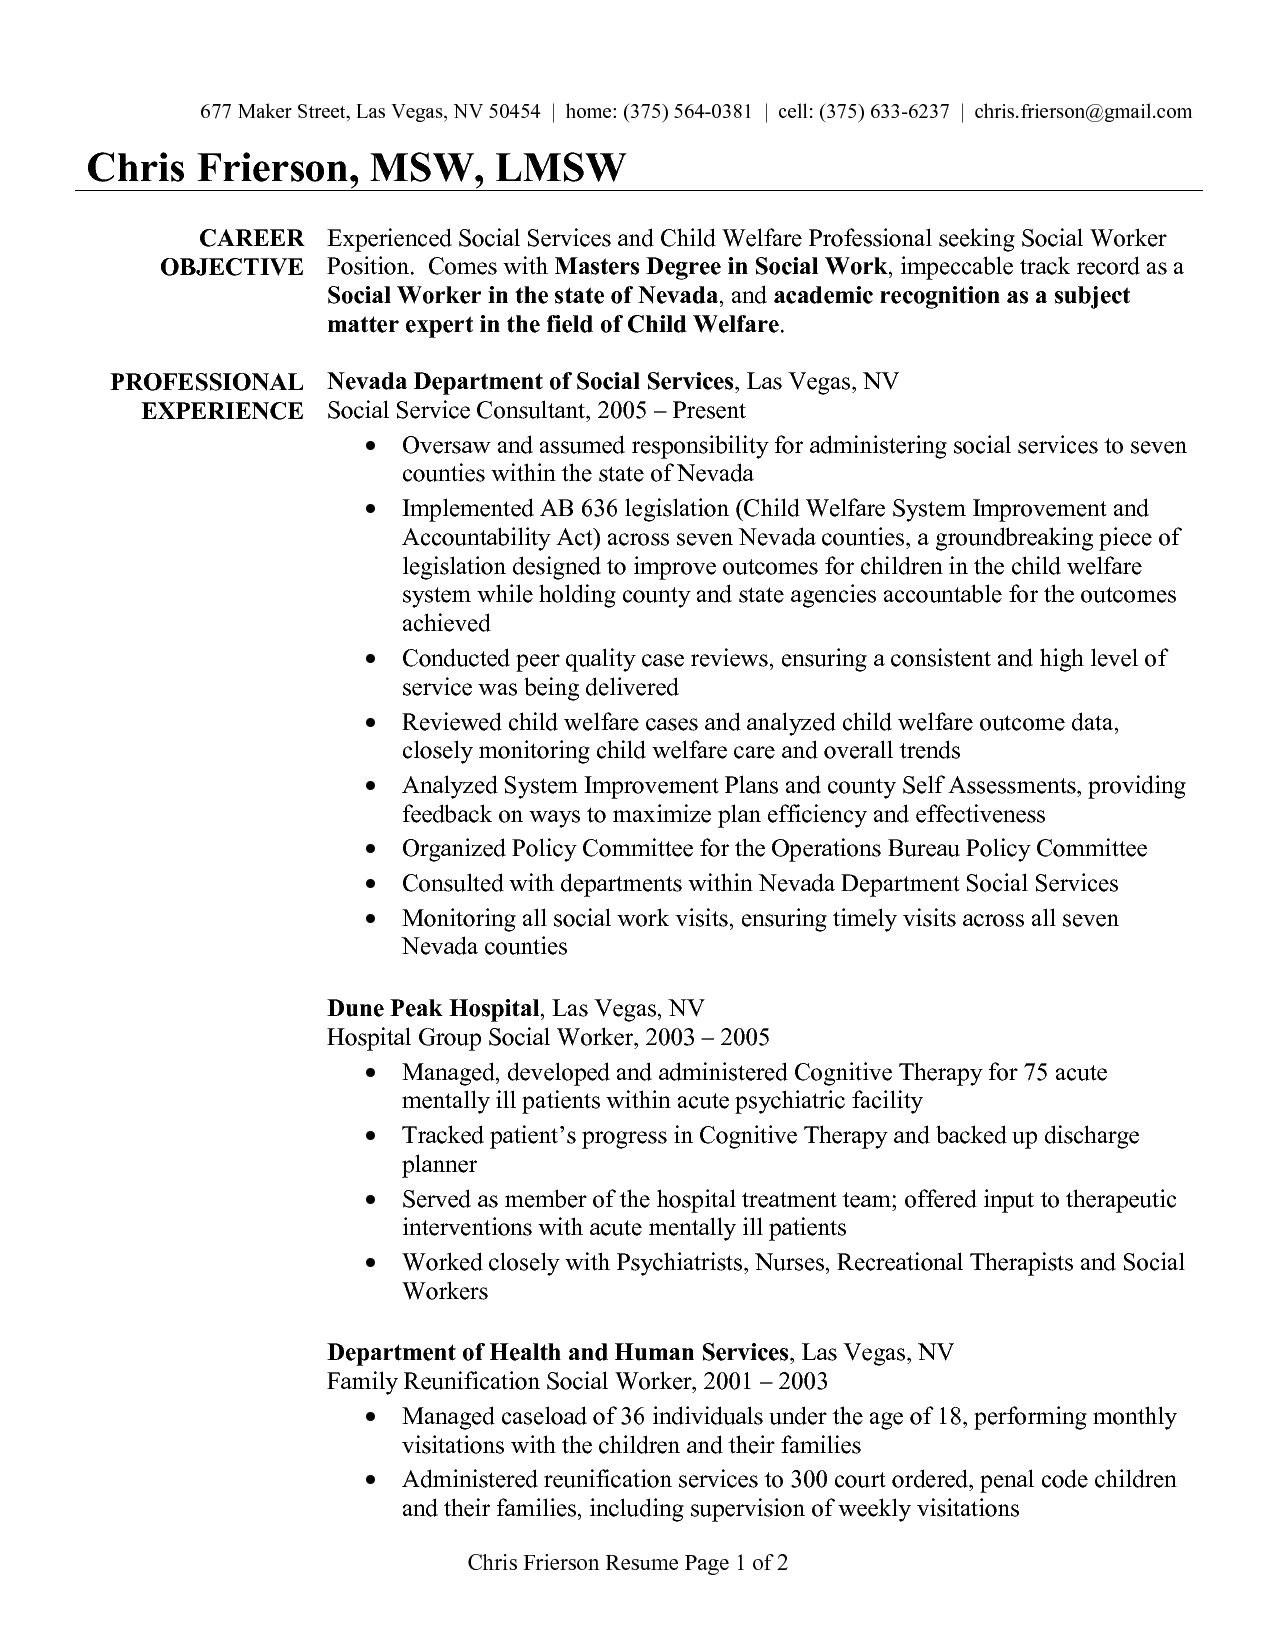 social work resume examples social worker resume sample - Resume Format For Social Worker